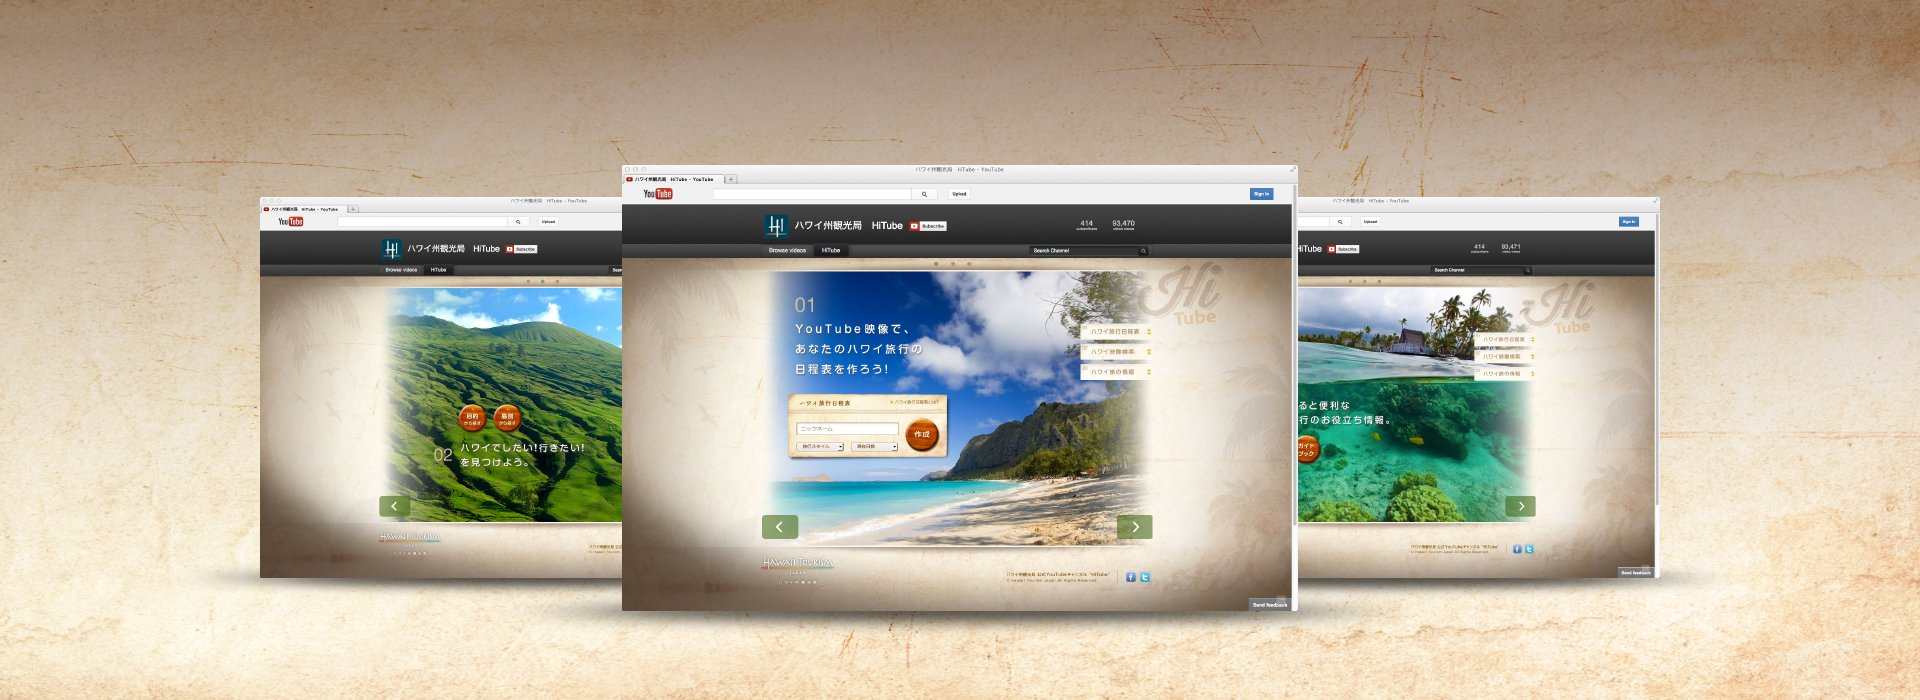 Clarence Lee Design & Associates, LLC | HiTube – Hawaii